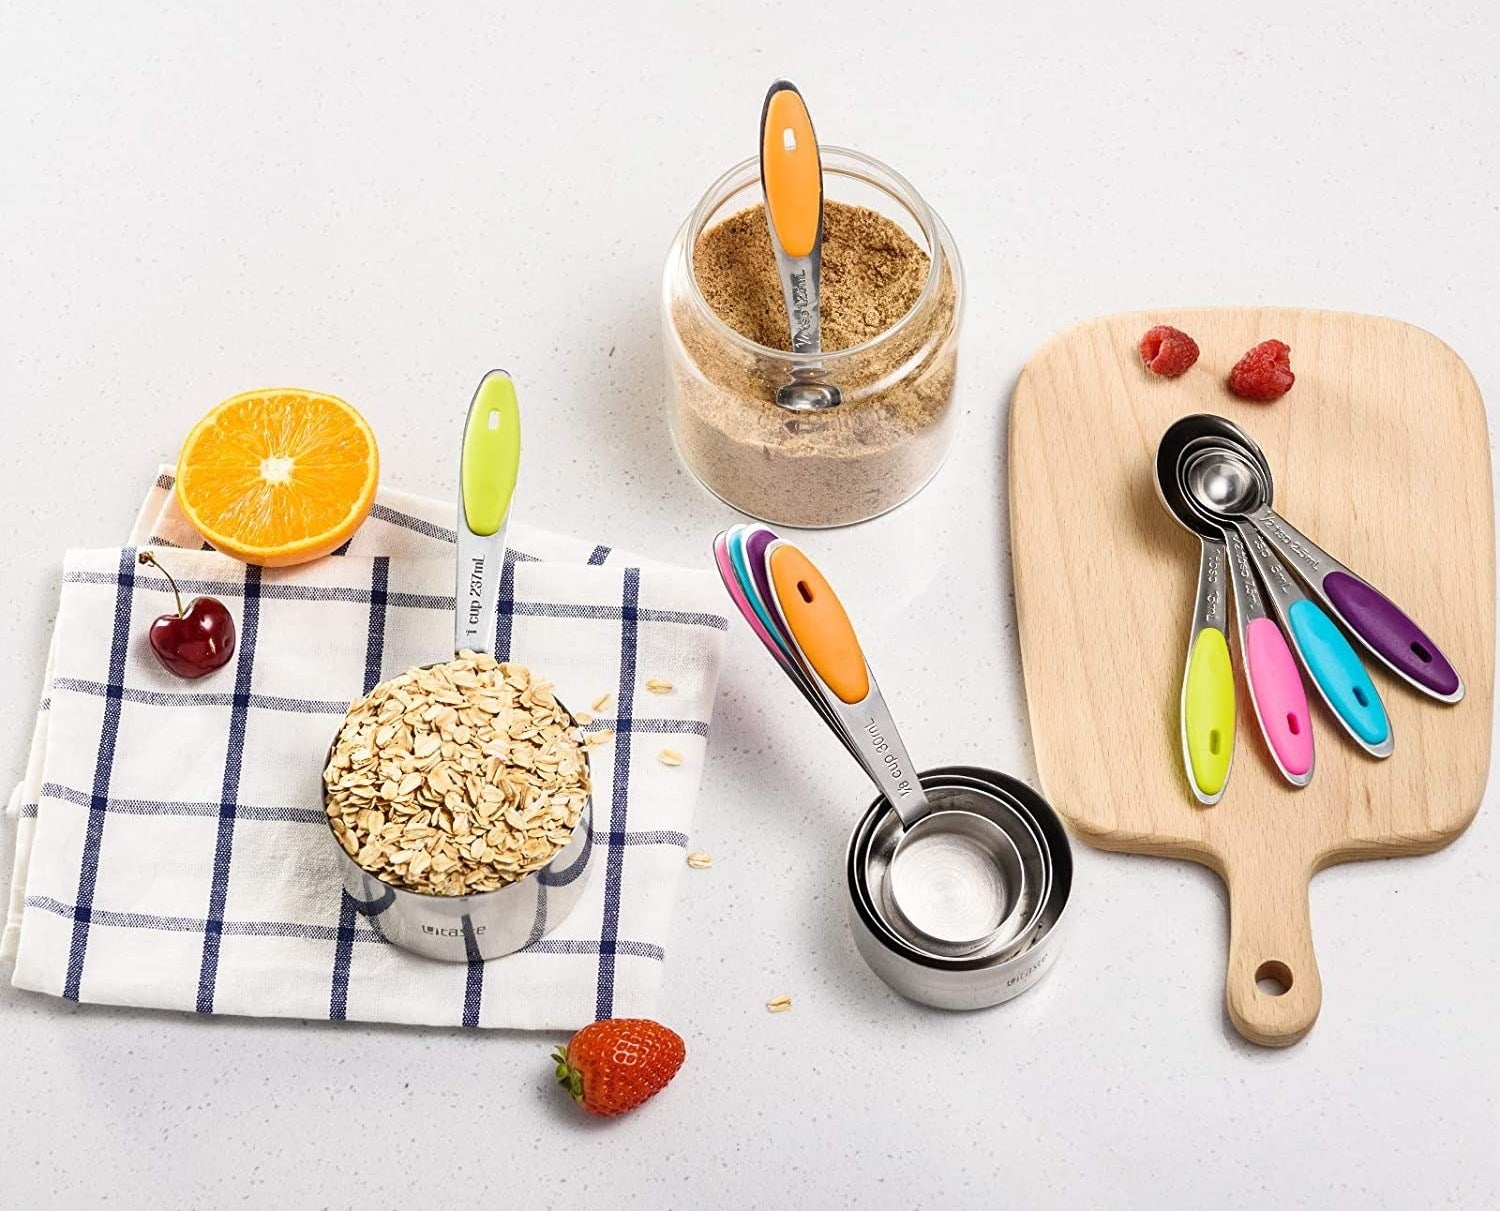 A set of measuring spoons on a wooden cutting board next to a stack of measuring cups